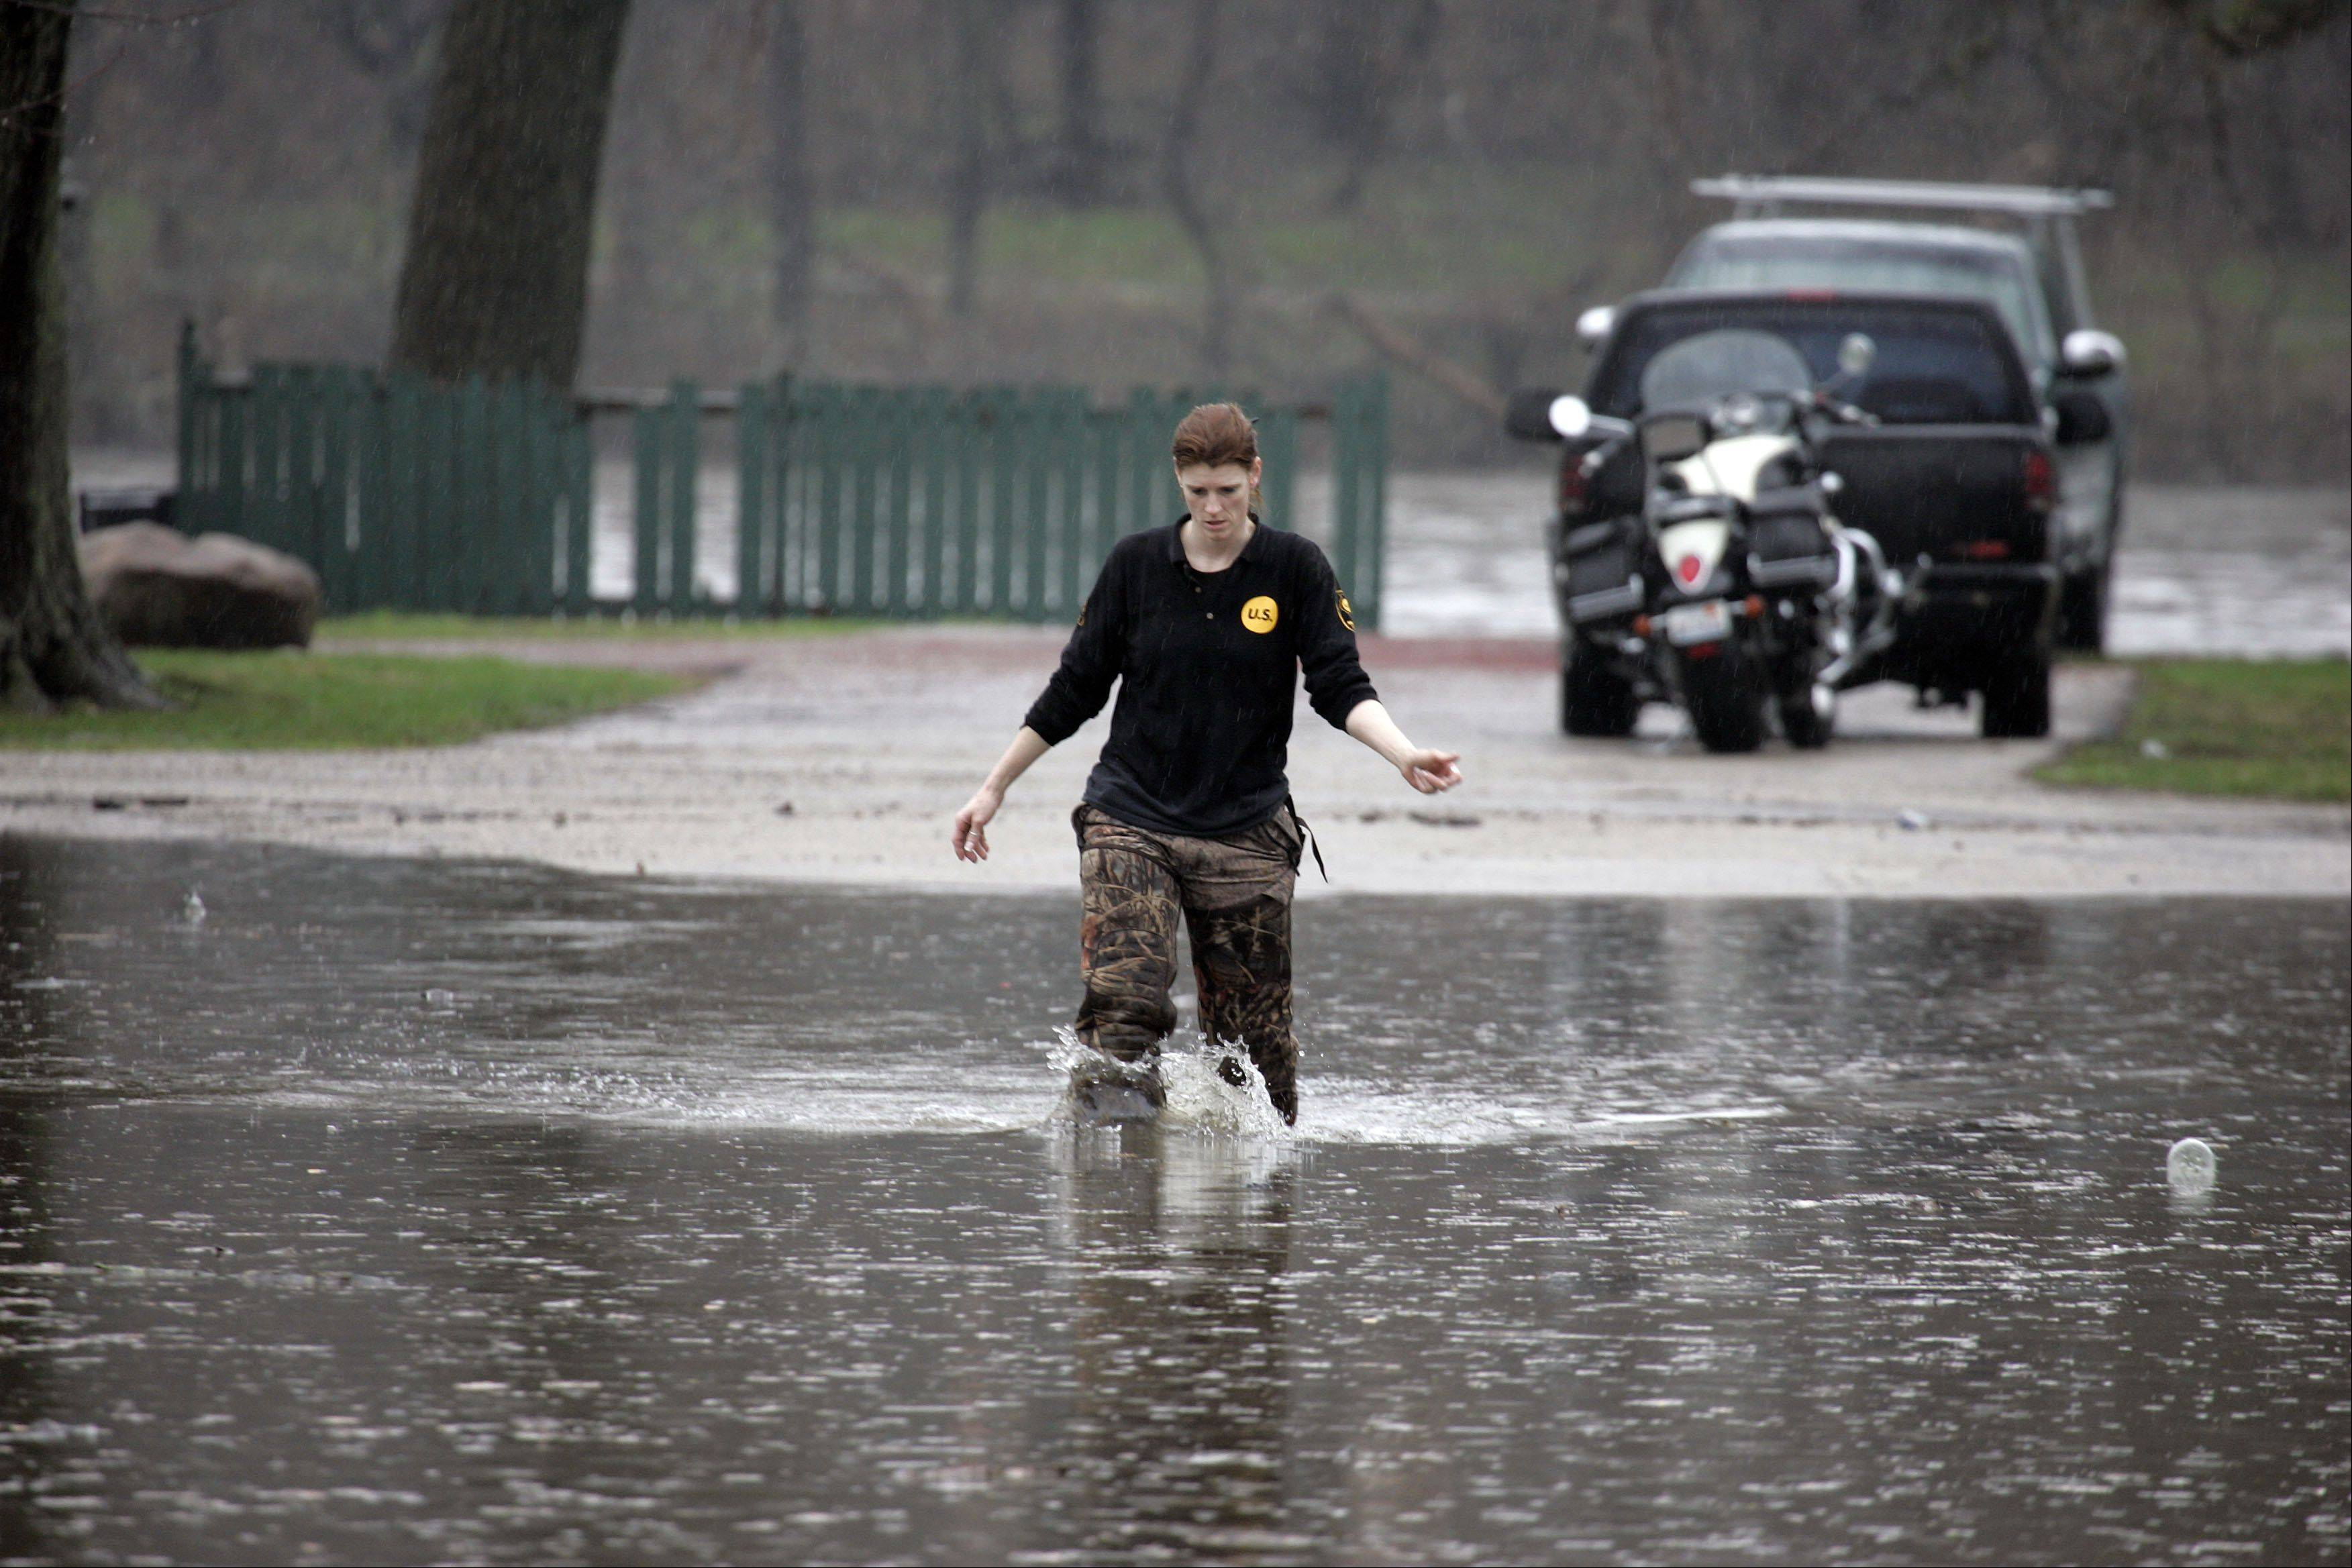 Carrie Wolotowsky of South Elgin wades across a flooded East Spring Ave to get to her vehicle after flooding on the Fox River Thursday in South Elgin.